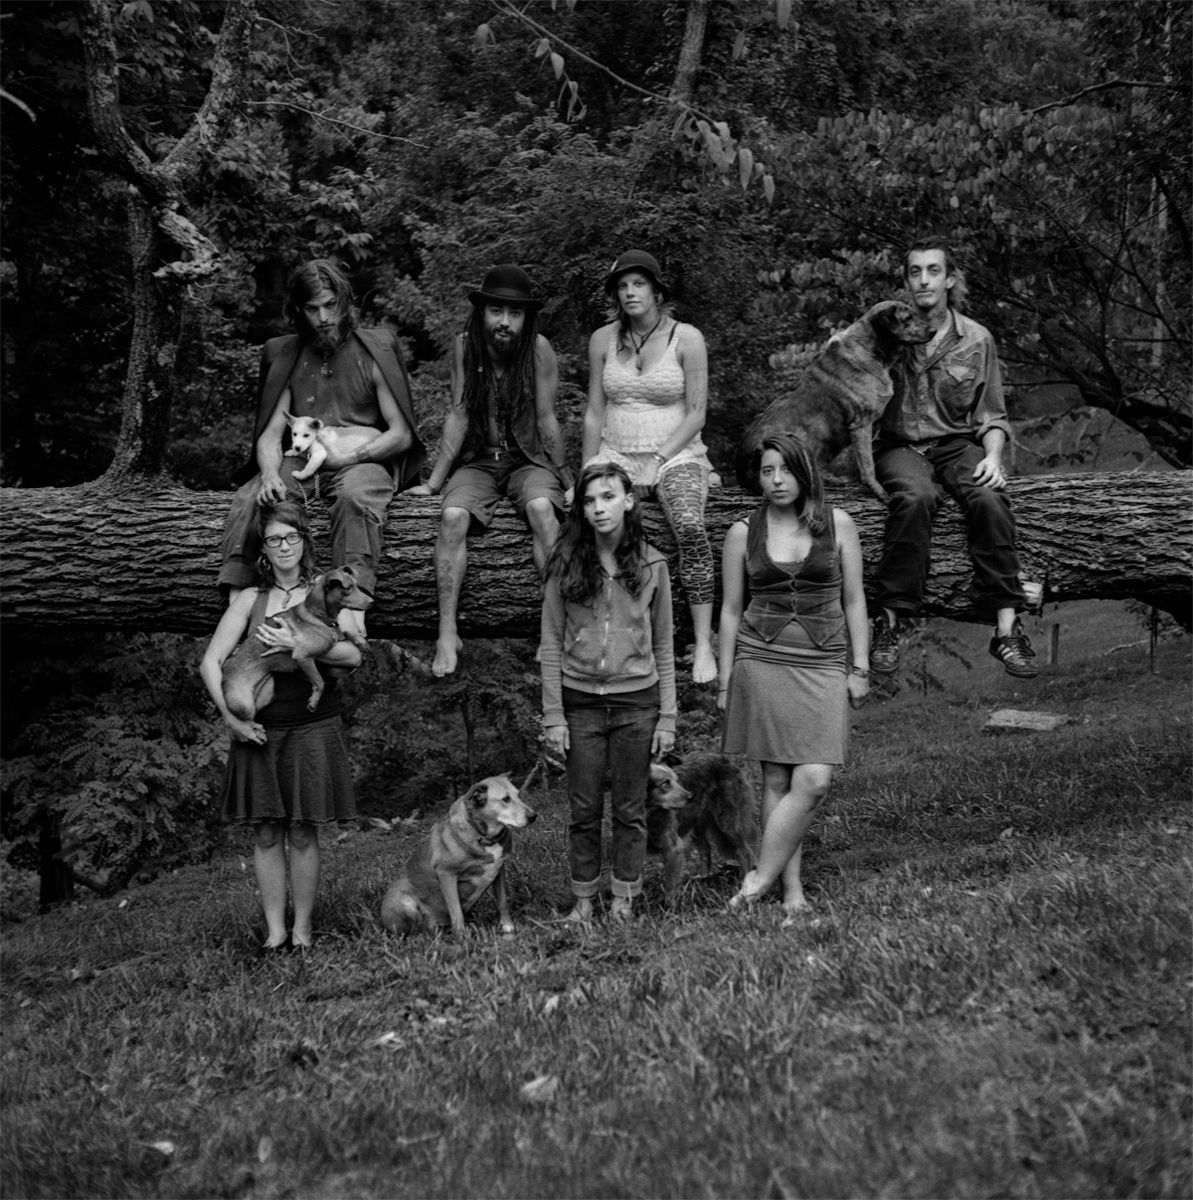 Rob Amberg, The Group, Paw Paw, Madison County, NC, 2014, Archival Pigment Print, 5 x 5 (image size), Edition of 10, Photography